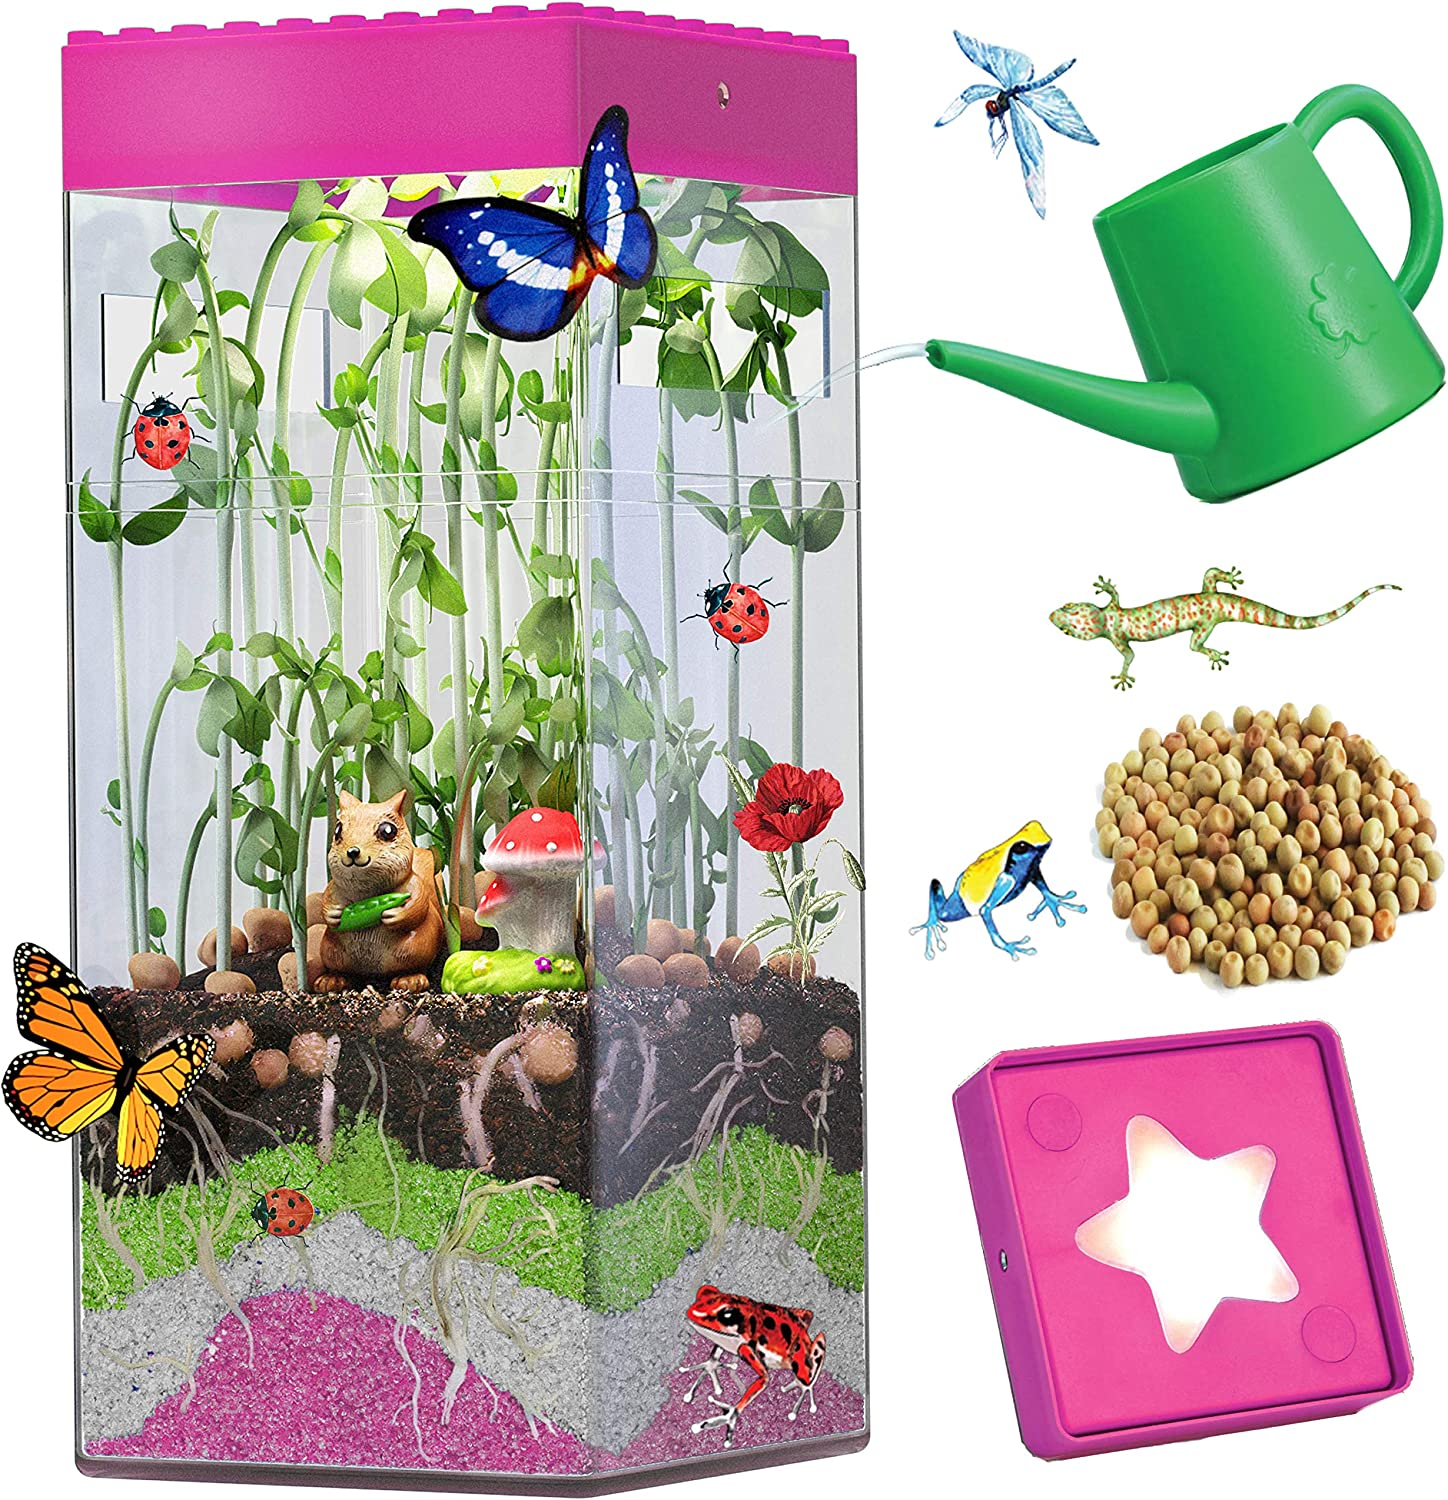 Gardening STEM Toys Kids Butterfly Terrarium Kit for Girls Indoor Planting Kit for Kids Age 4-8 5 6 7 8-12 Pink Nature Crafts Mini Vegetable Garden Microgreen Life Science Kit Gifts with Light